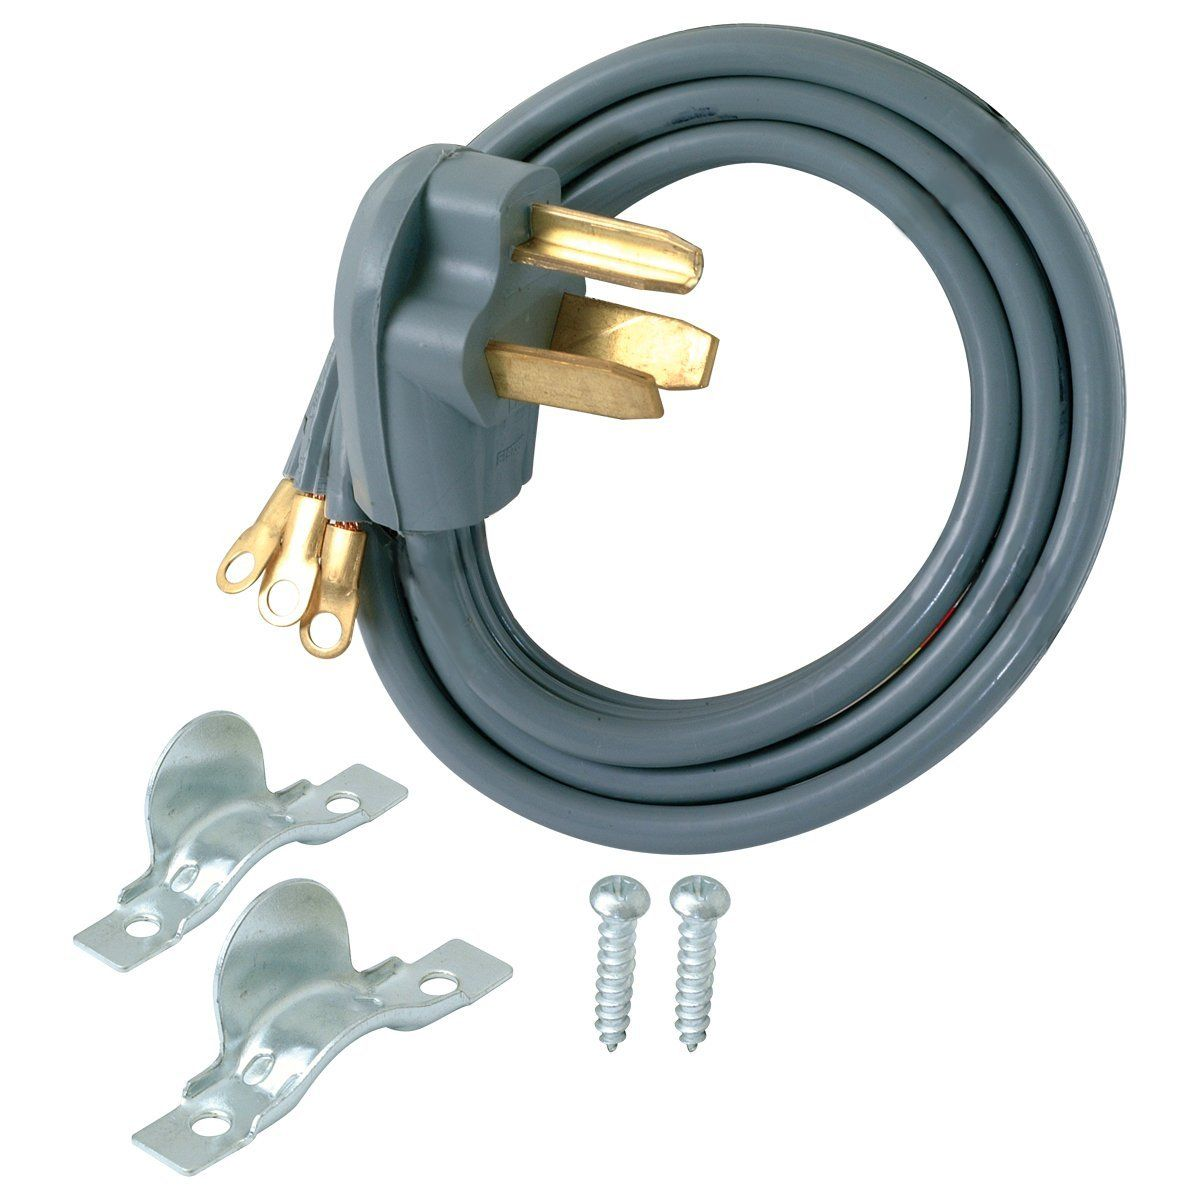 Eastman Ez Flo 61251 3 Prong Dryer Cord 30 Amp 6 3 Wire Want To Know More Click On The Image This Is An Affiliate Lin Electric Dryers Dryer Plug Dryer